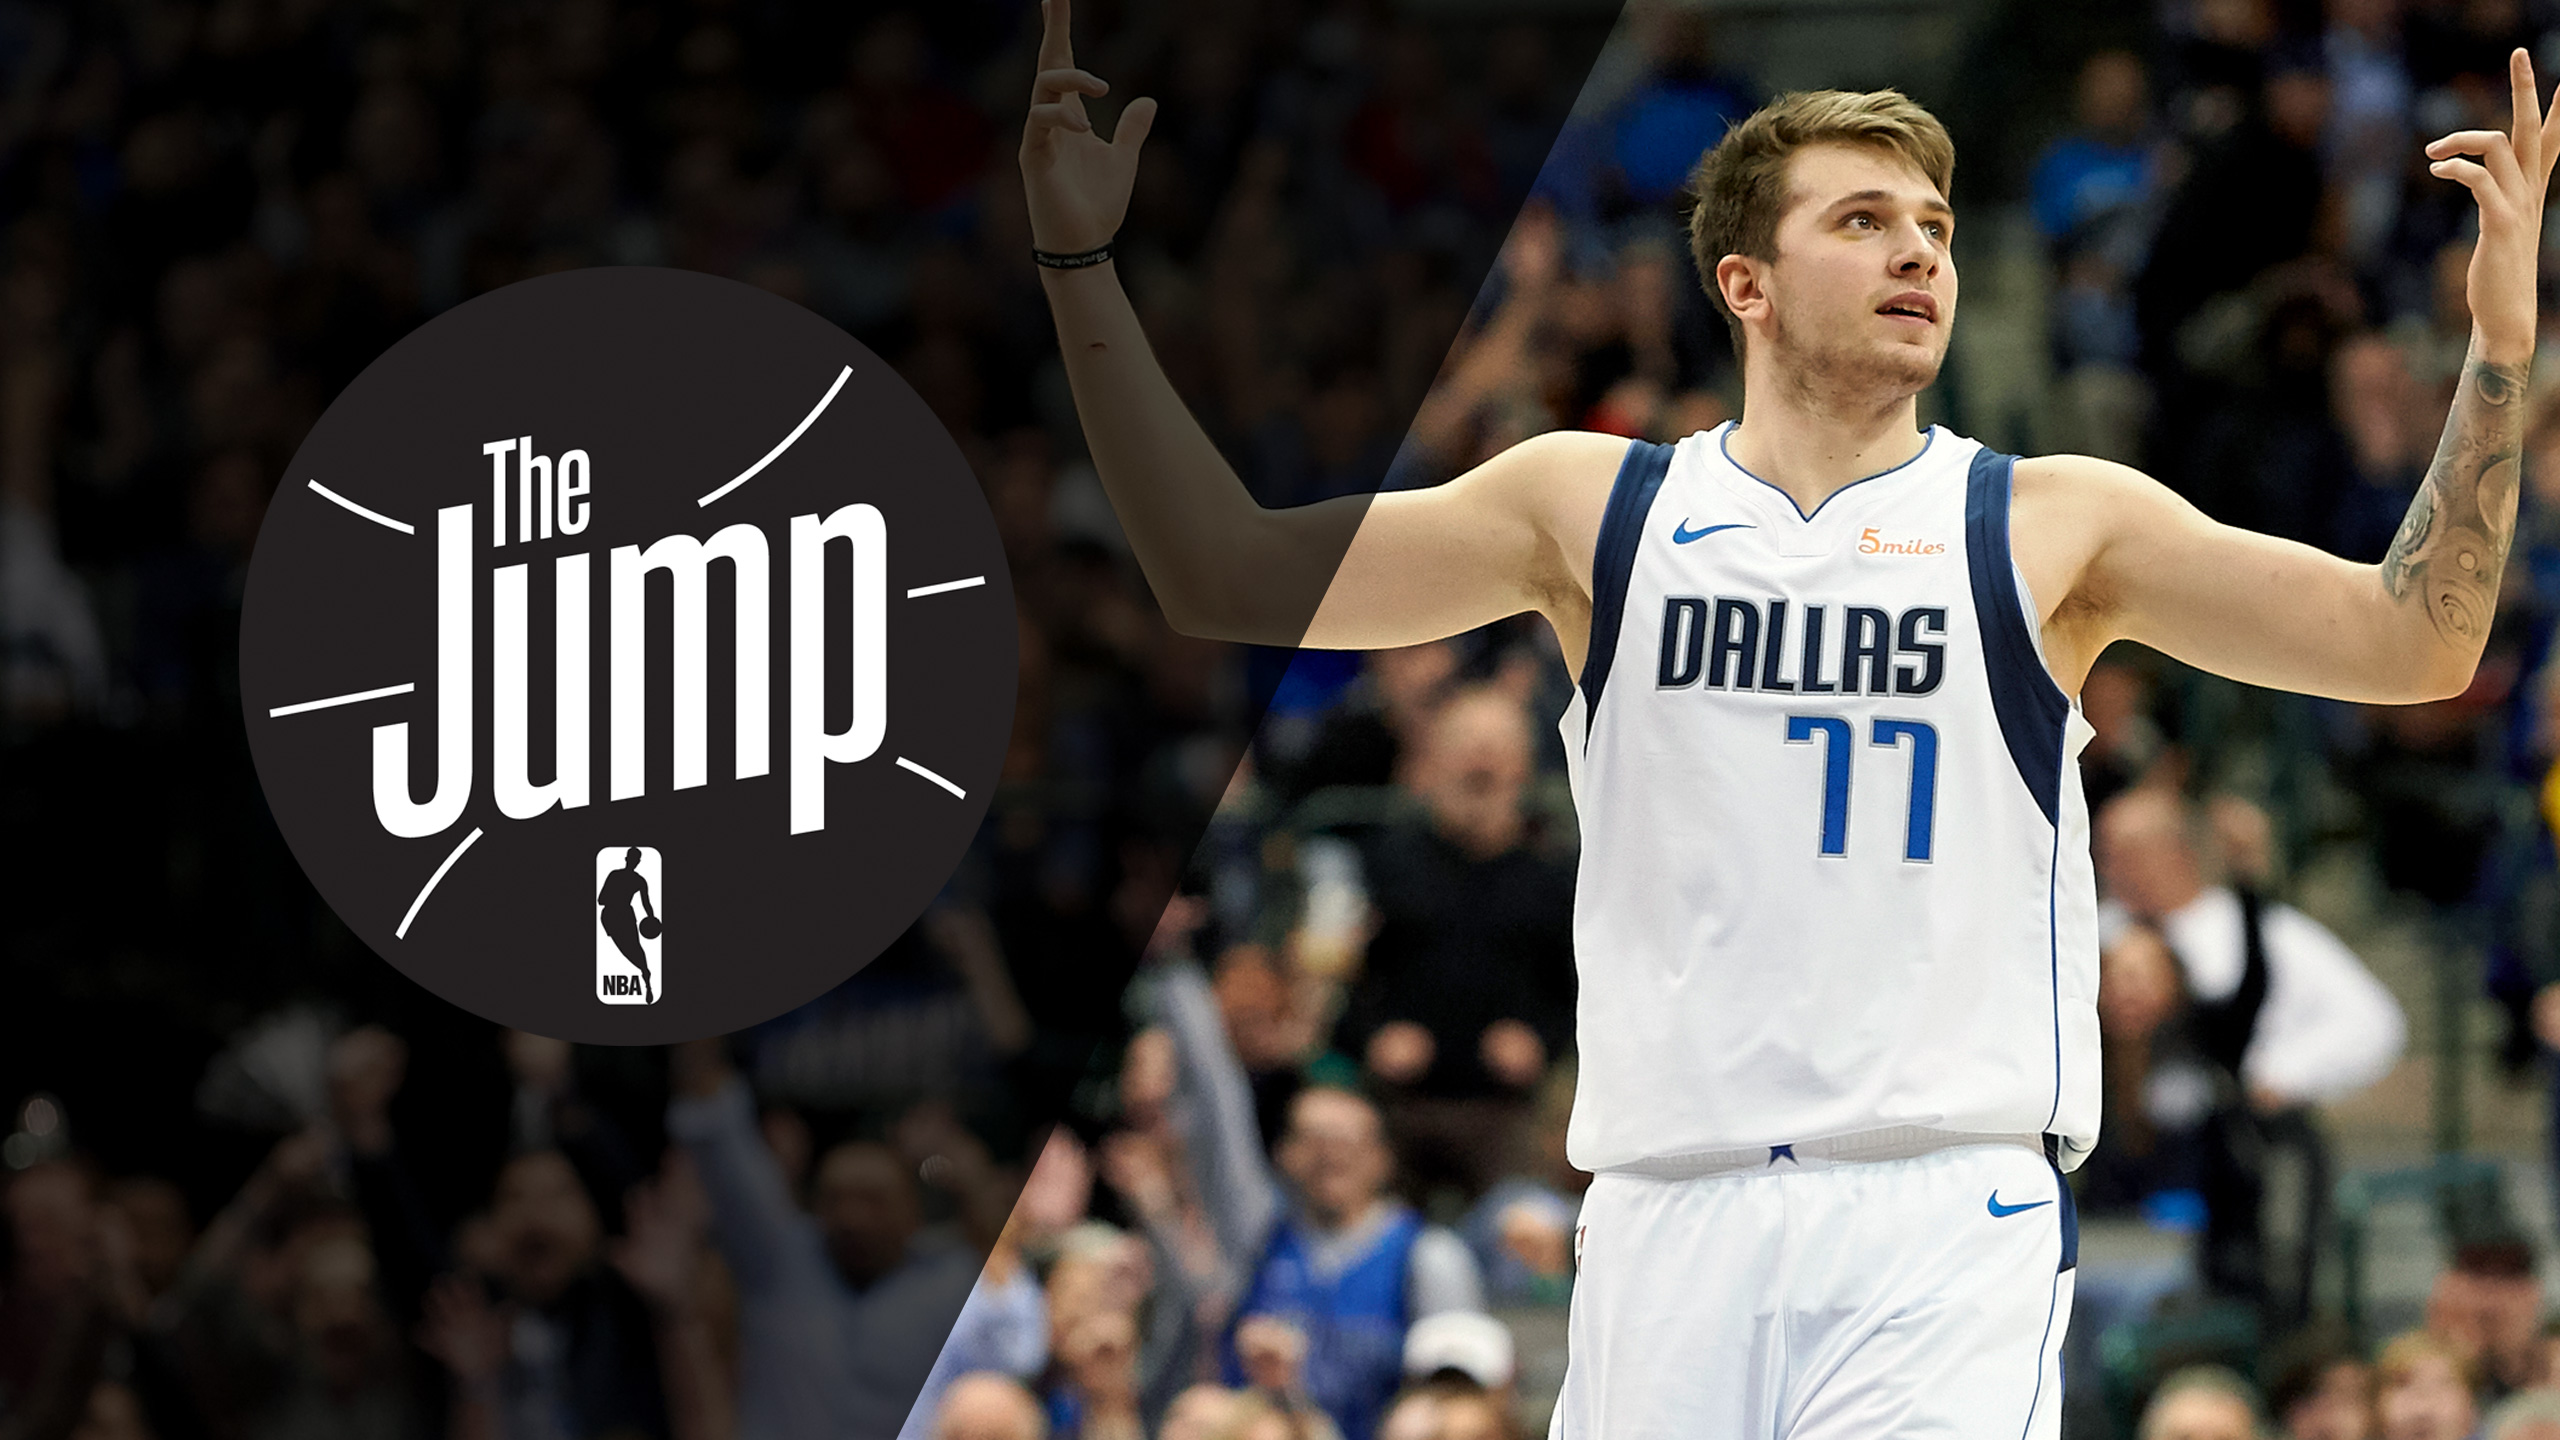 Mon, 12/10 - NBA: The Jump